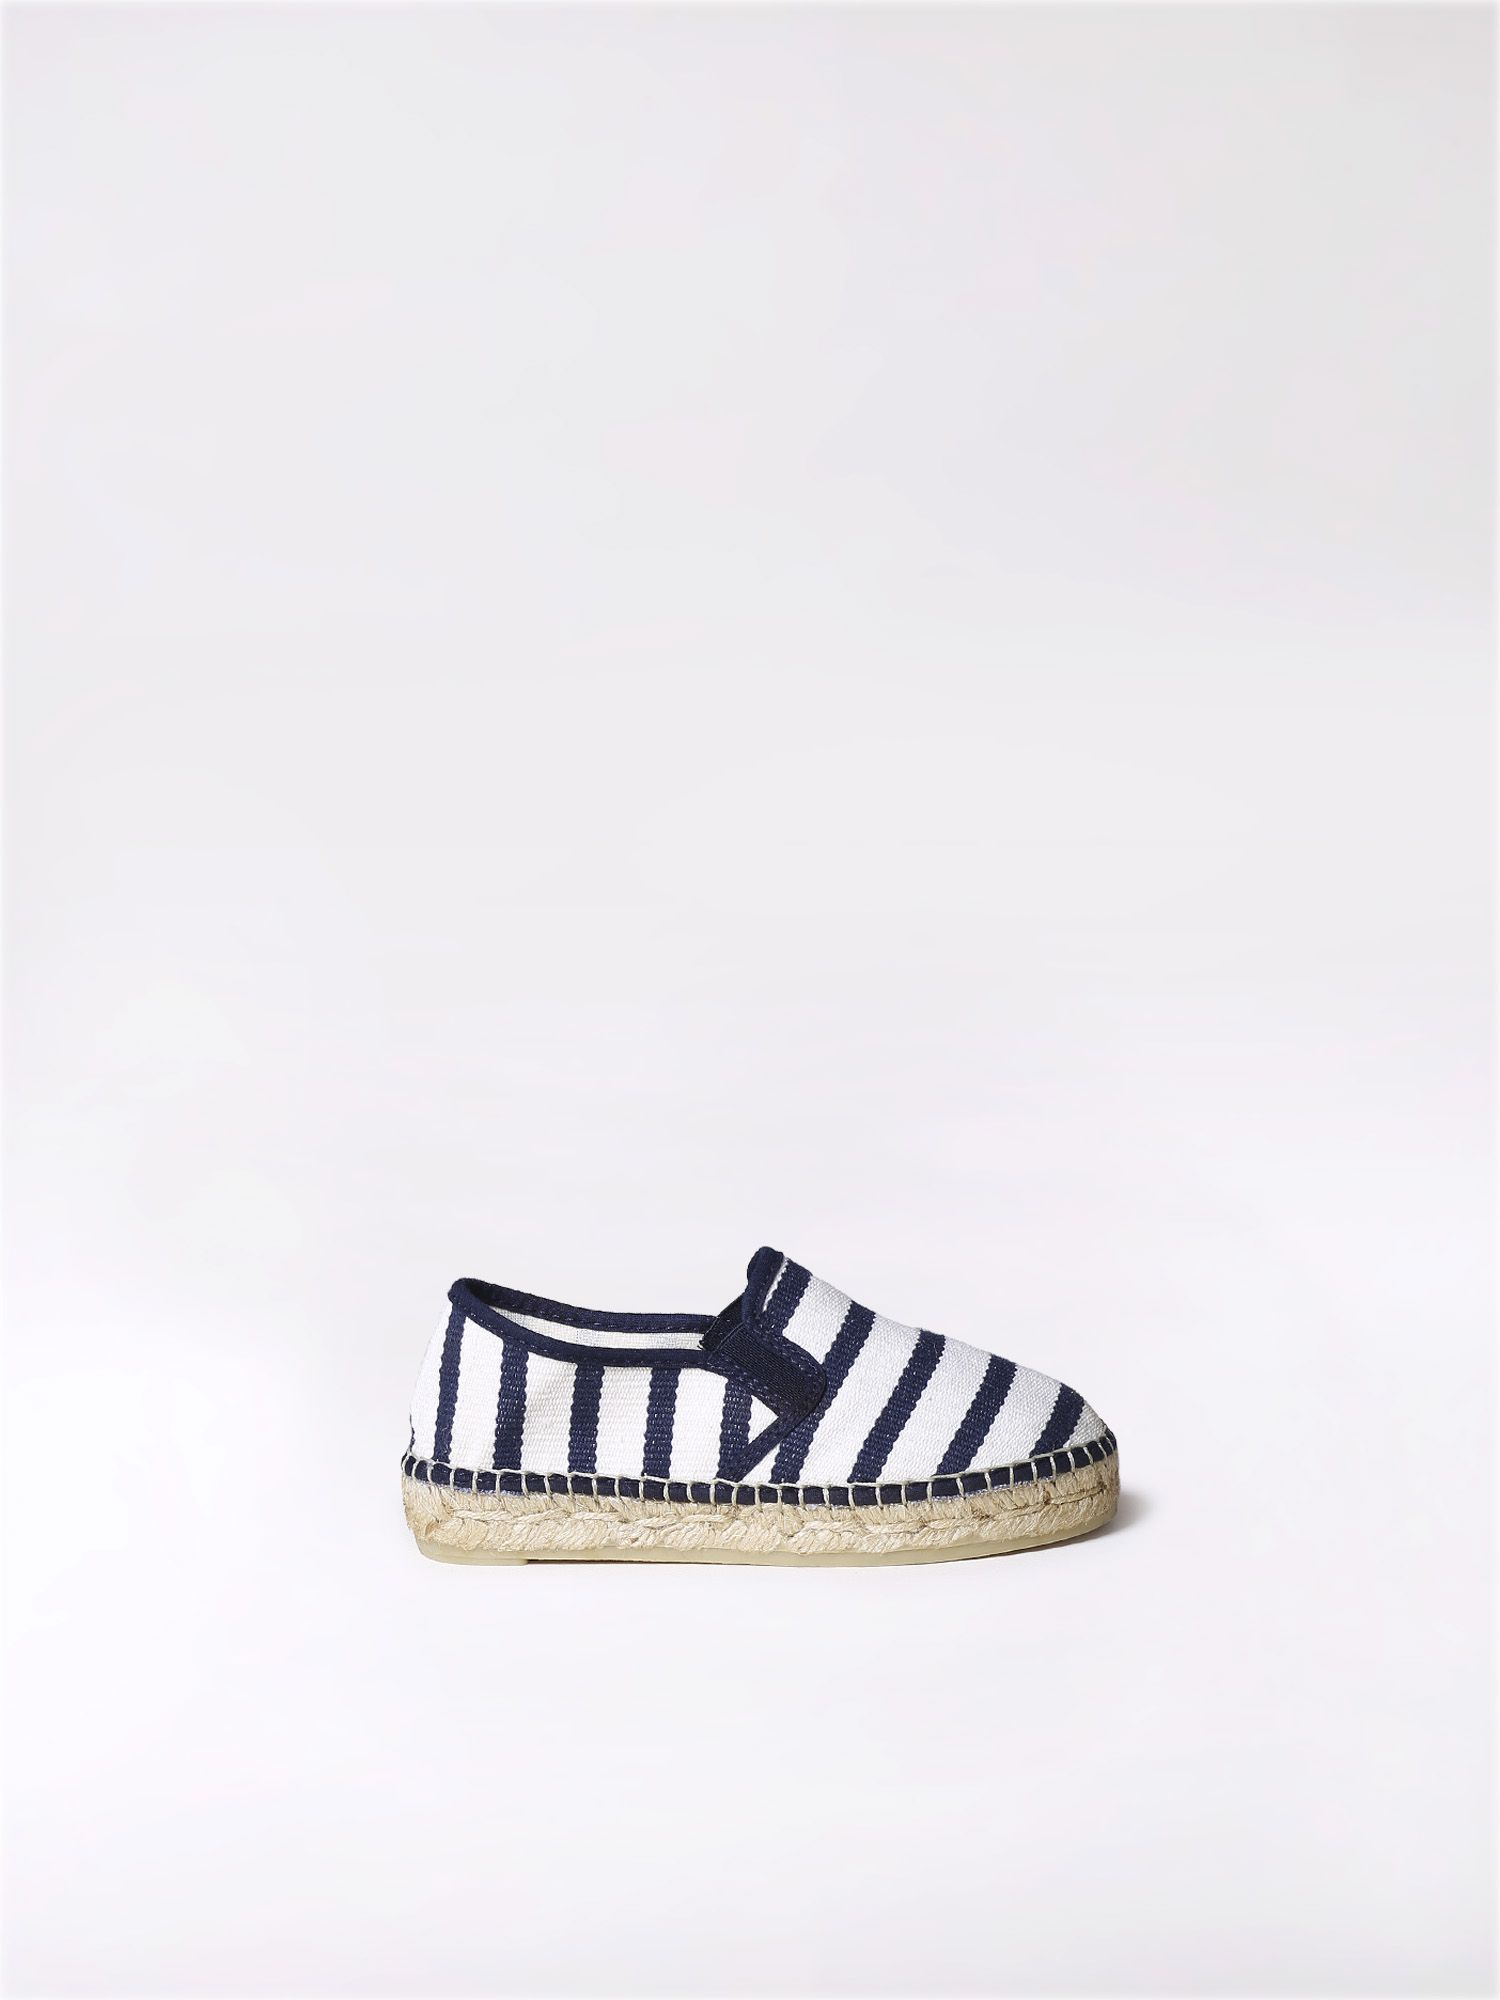 Striped espadrilles for kids - EFES-BR